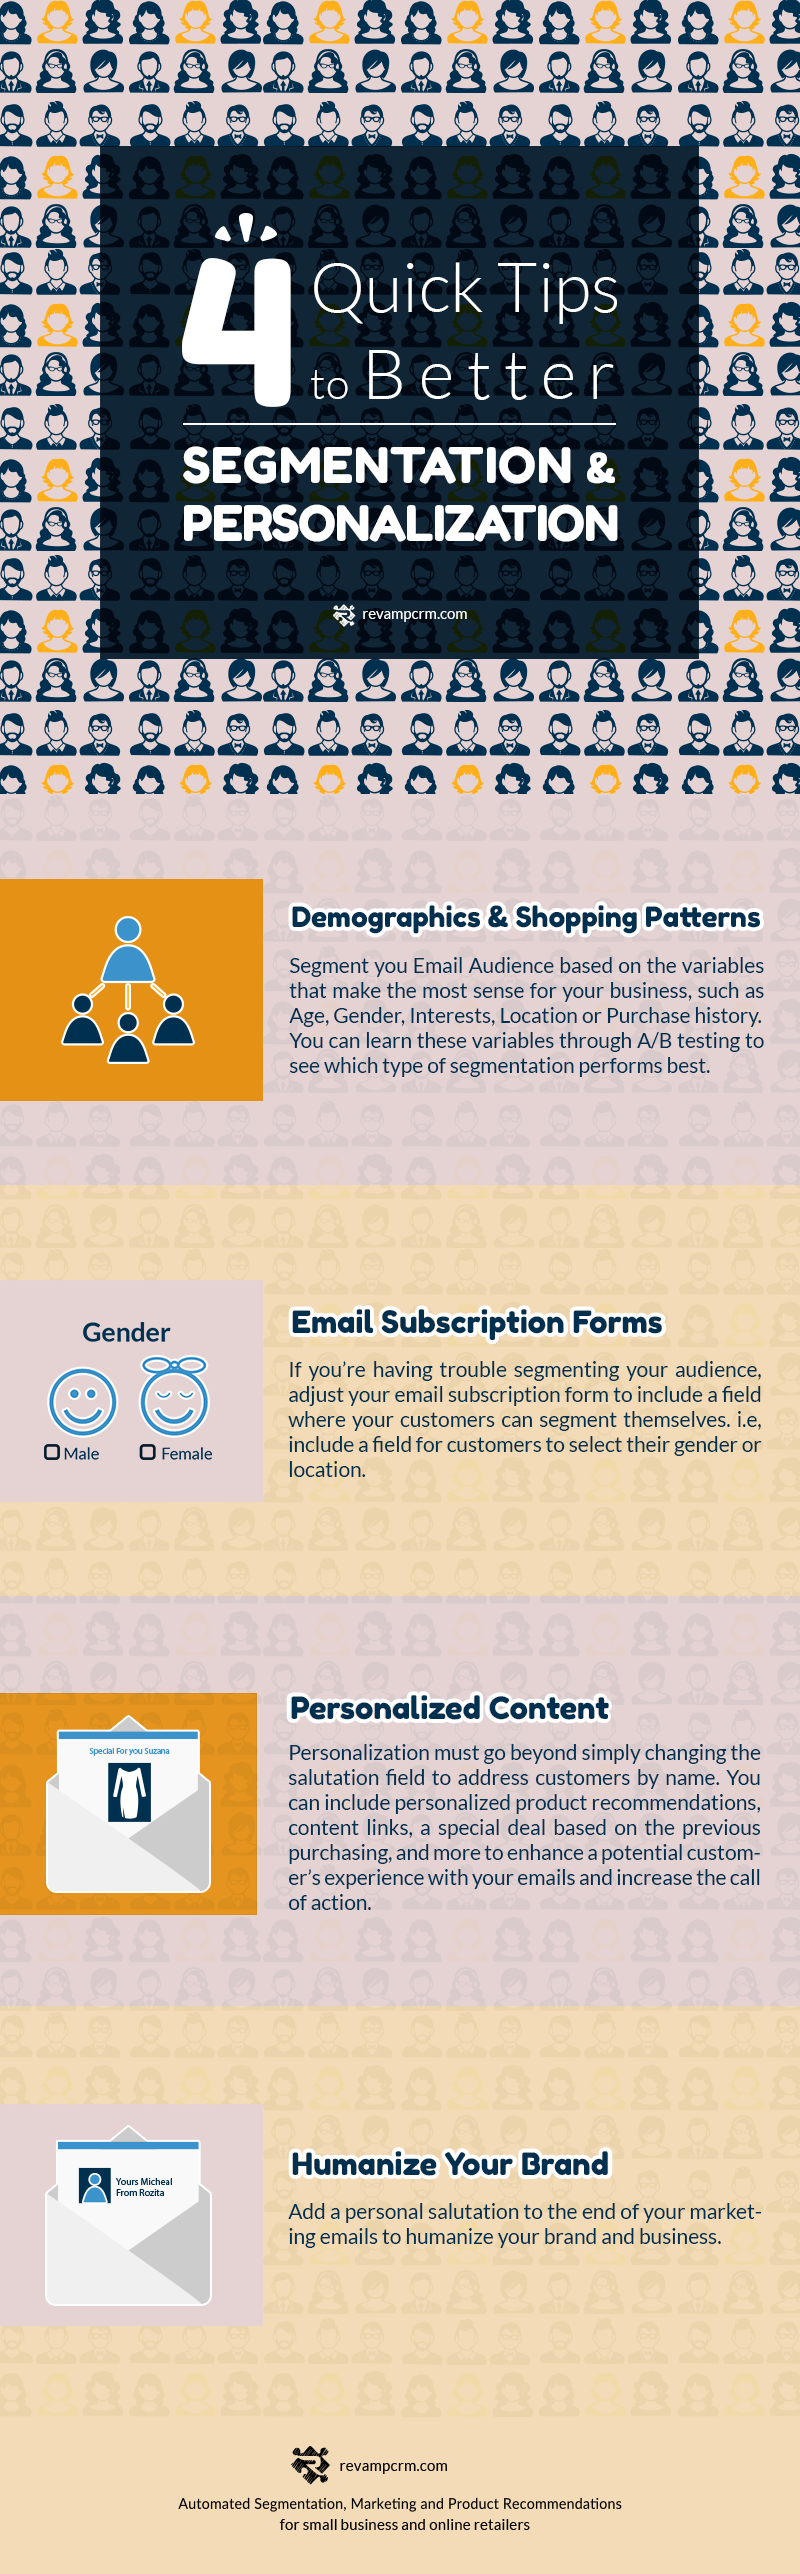 segmentation-and-personalization-4-tips-3